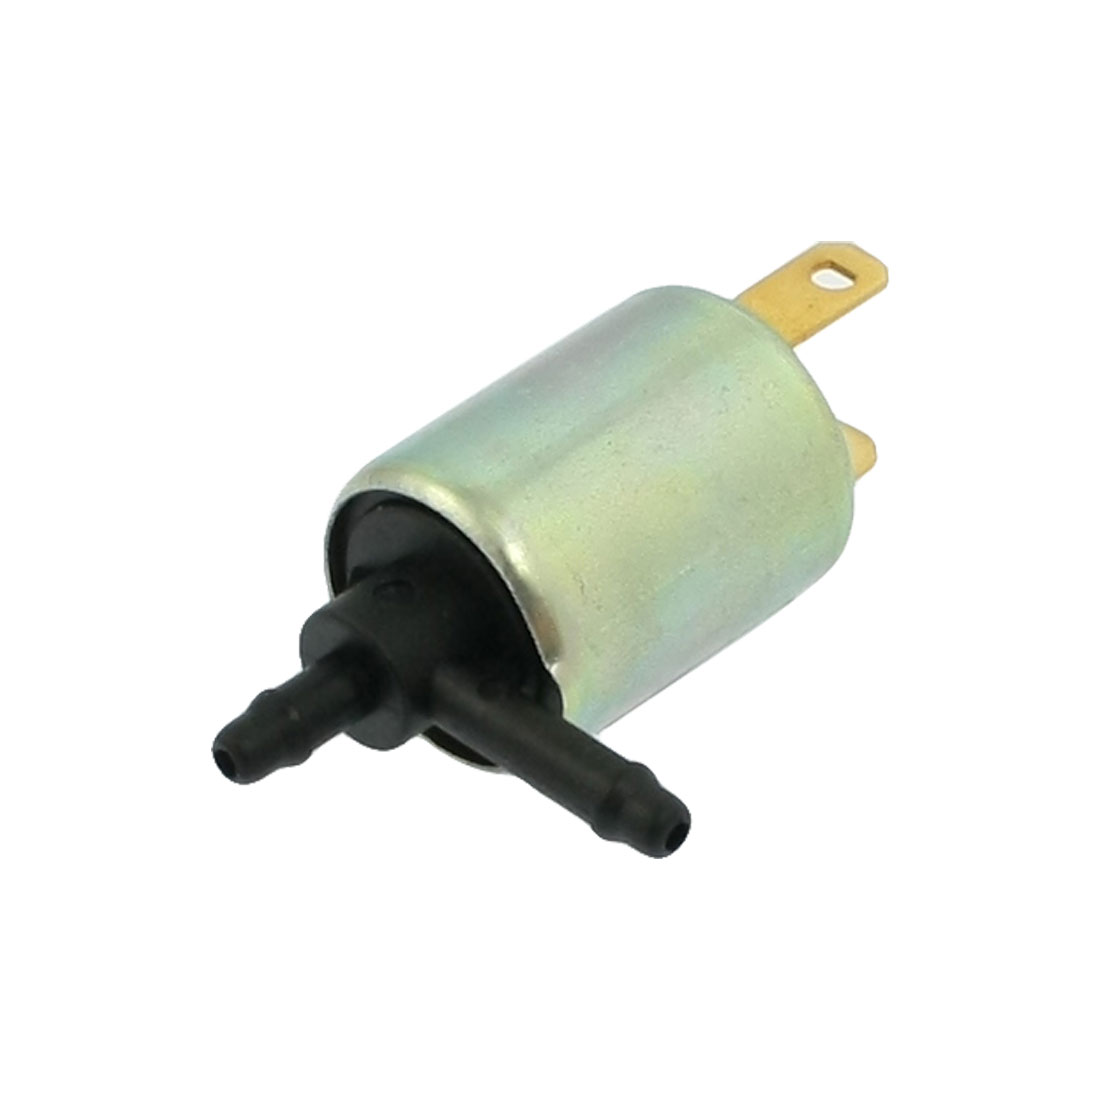 Air Powered Machine Electromagnetic Solenoid Valve DC 12V 12mA